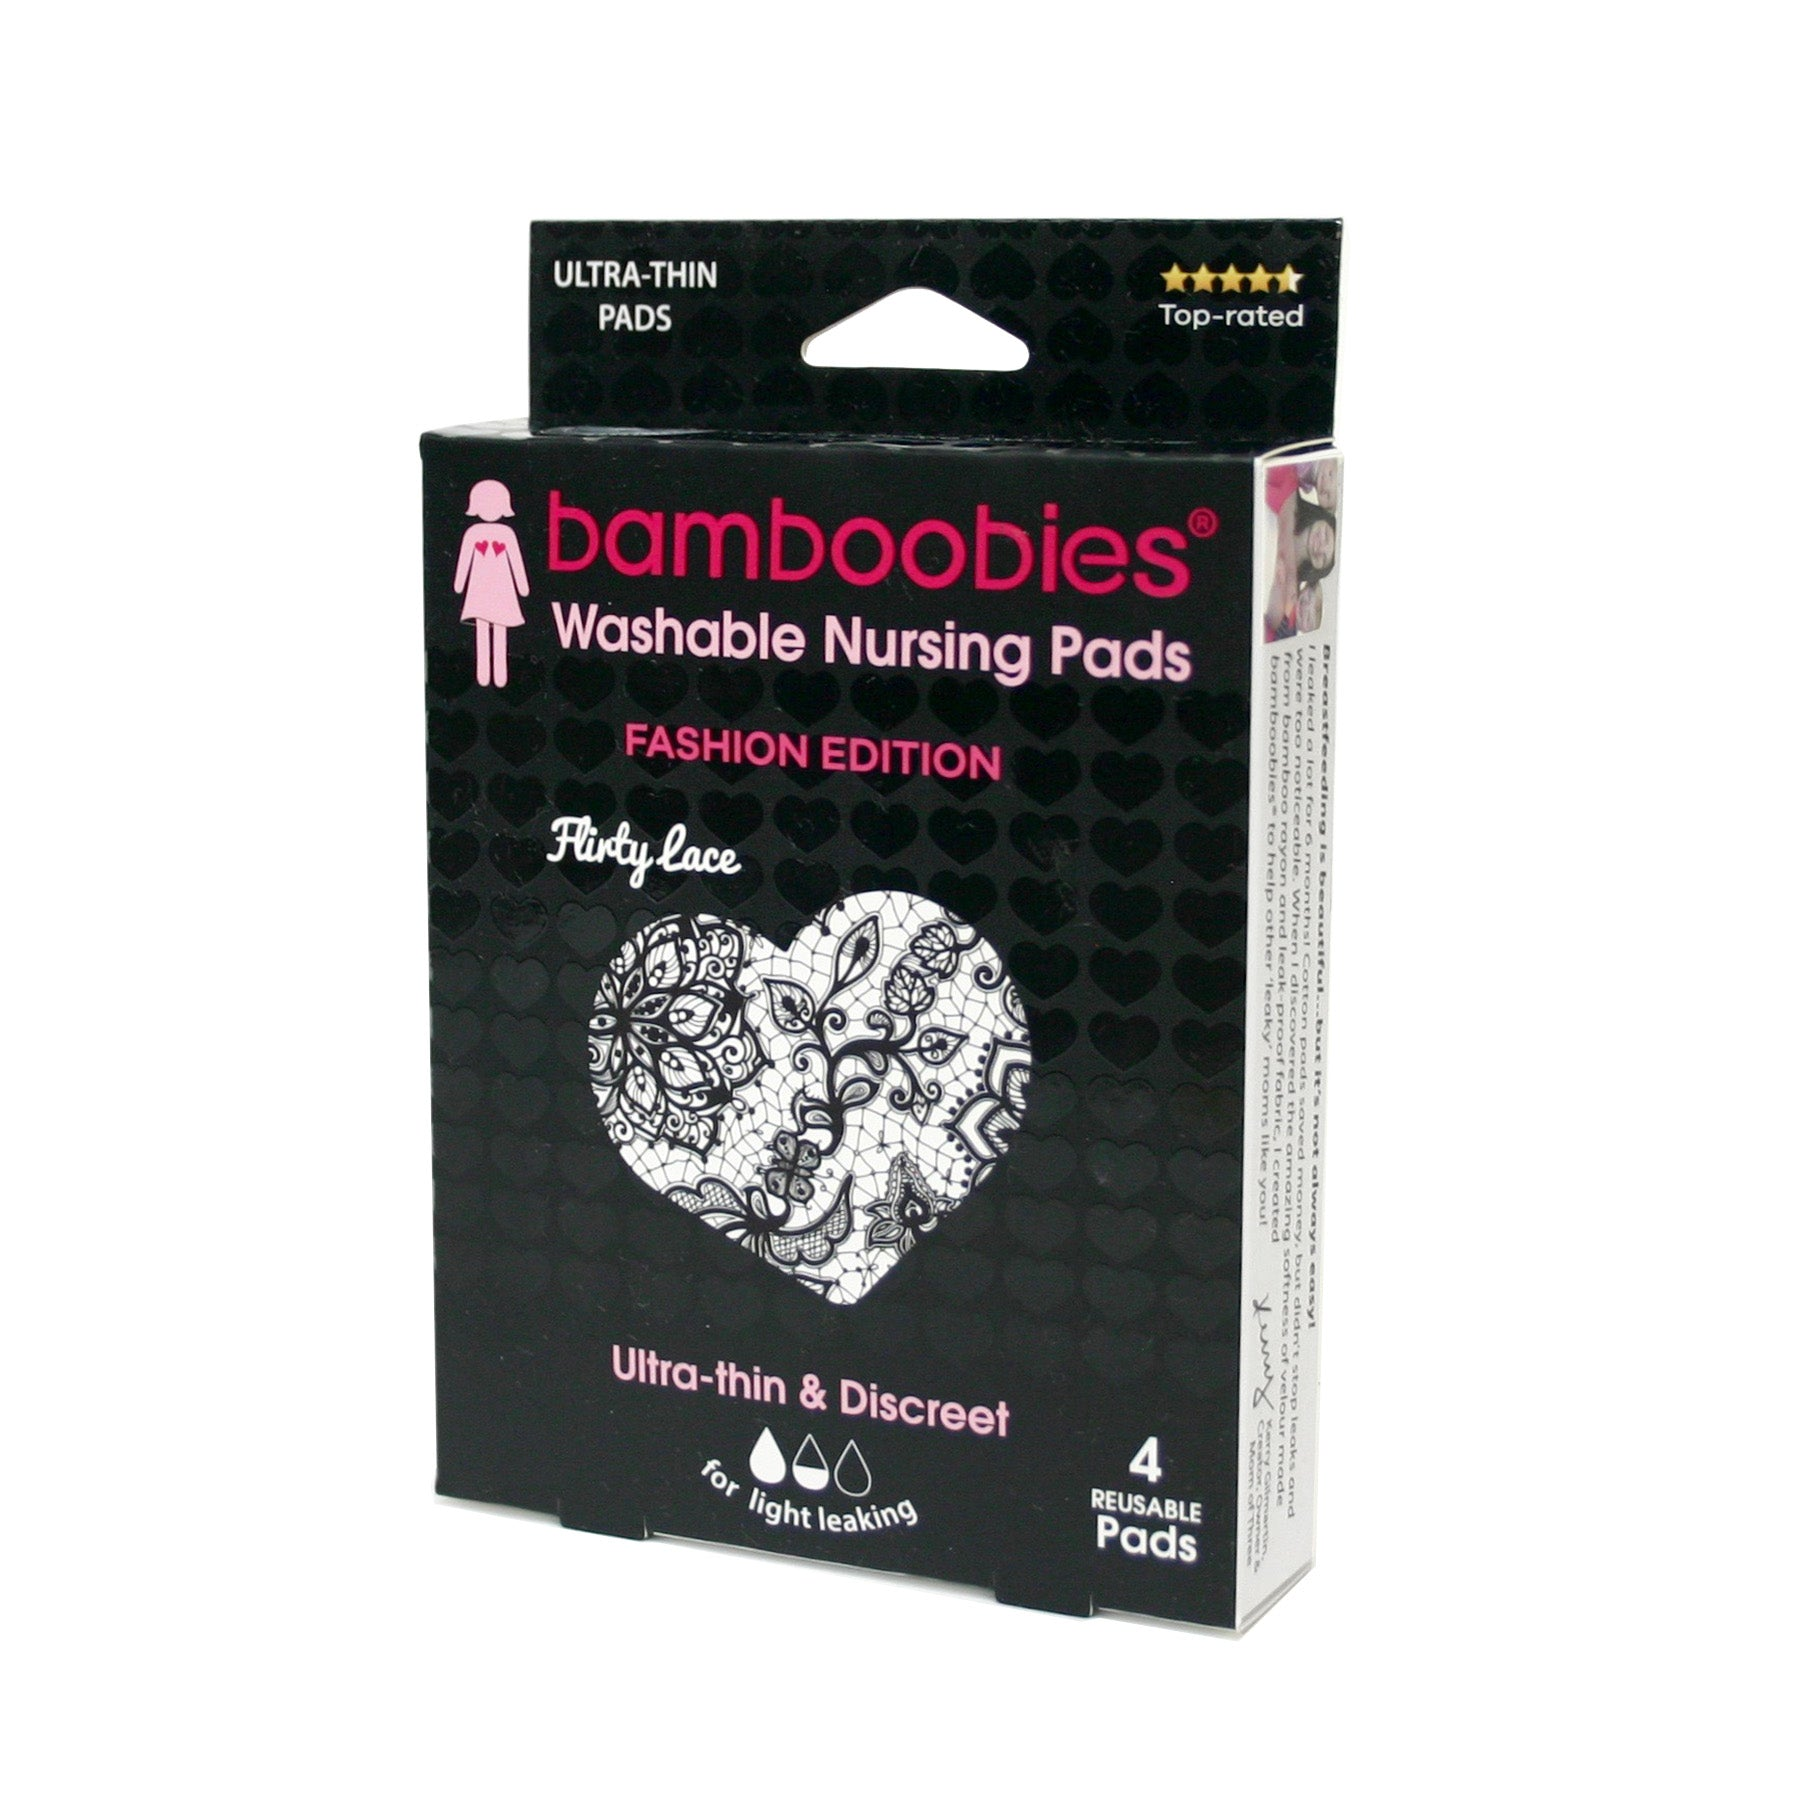 bamboobies Regular Nursing Pads - FASHION EDITION: Flirty Lace 2 pairs